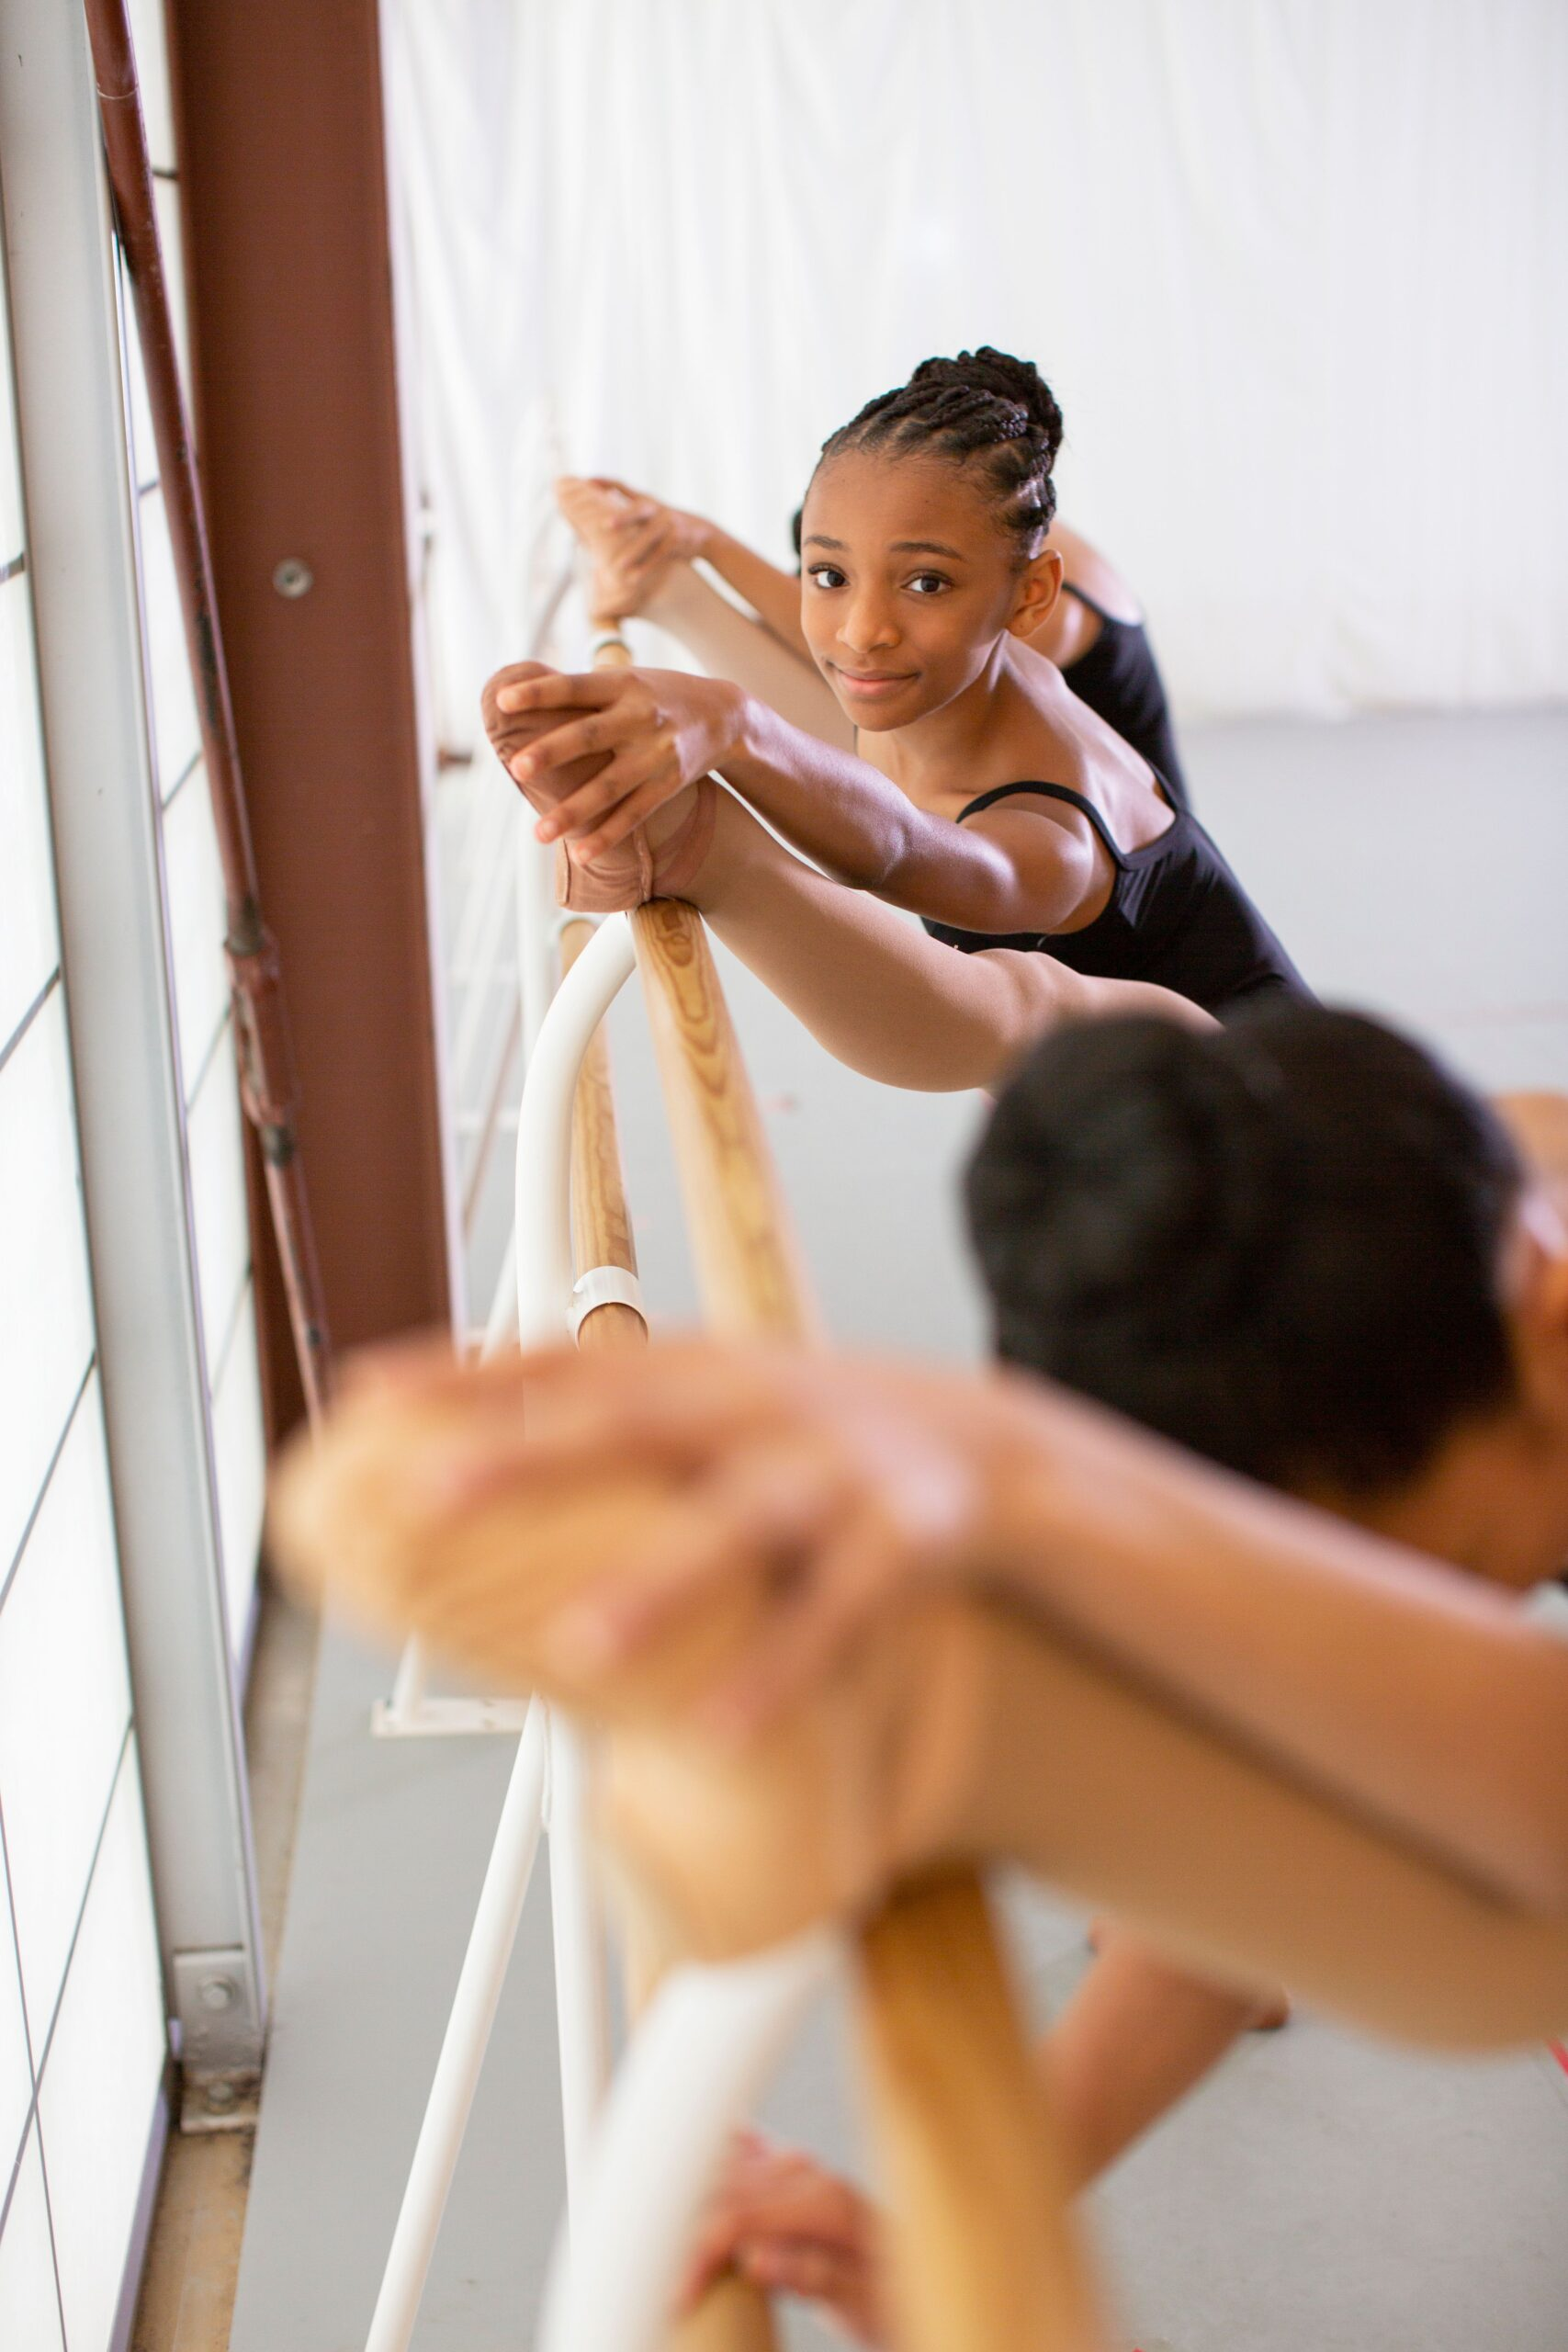 Photo of multiple young ballerina dancers at the bar, with the photo focused on the one in the center. She is a young black girl with her hair braided into a bun.